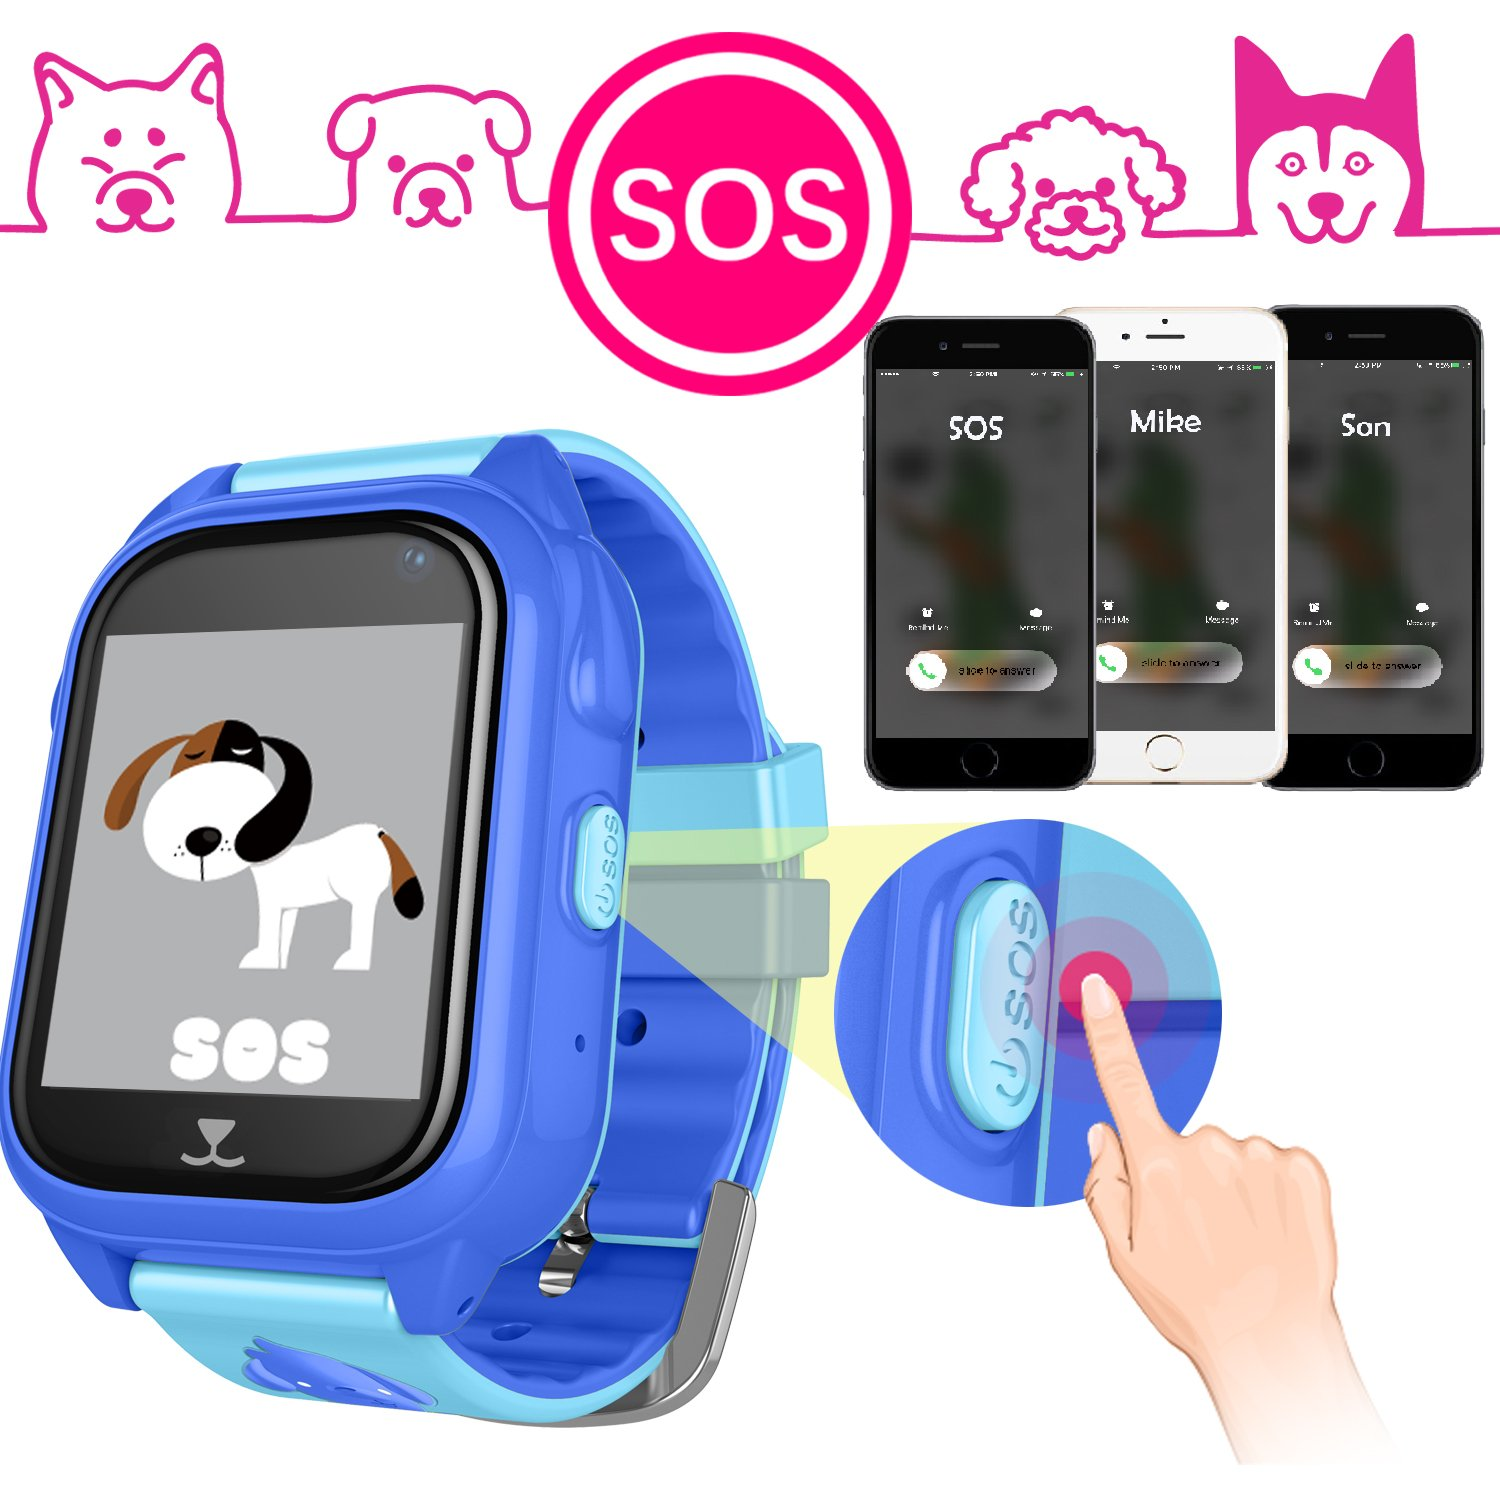 iCooLive Waterproof IP67 Kids Smart Watch Accurate GPS Tracker with FREE SIM CARD for Kid Boys Girls Smartwatch Phone watch Game watch with SOS Call Camera Electronic Learning Toys Birthday Gift by iCooLive (Image #9)